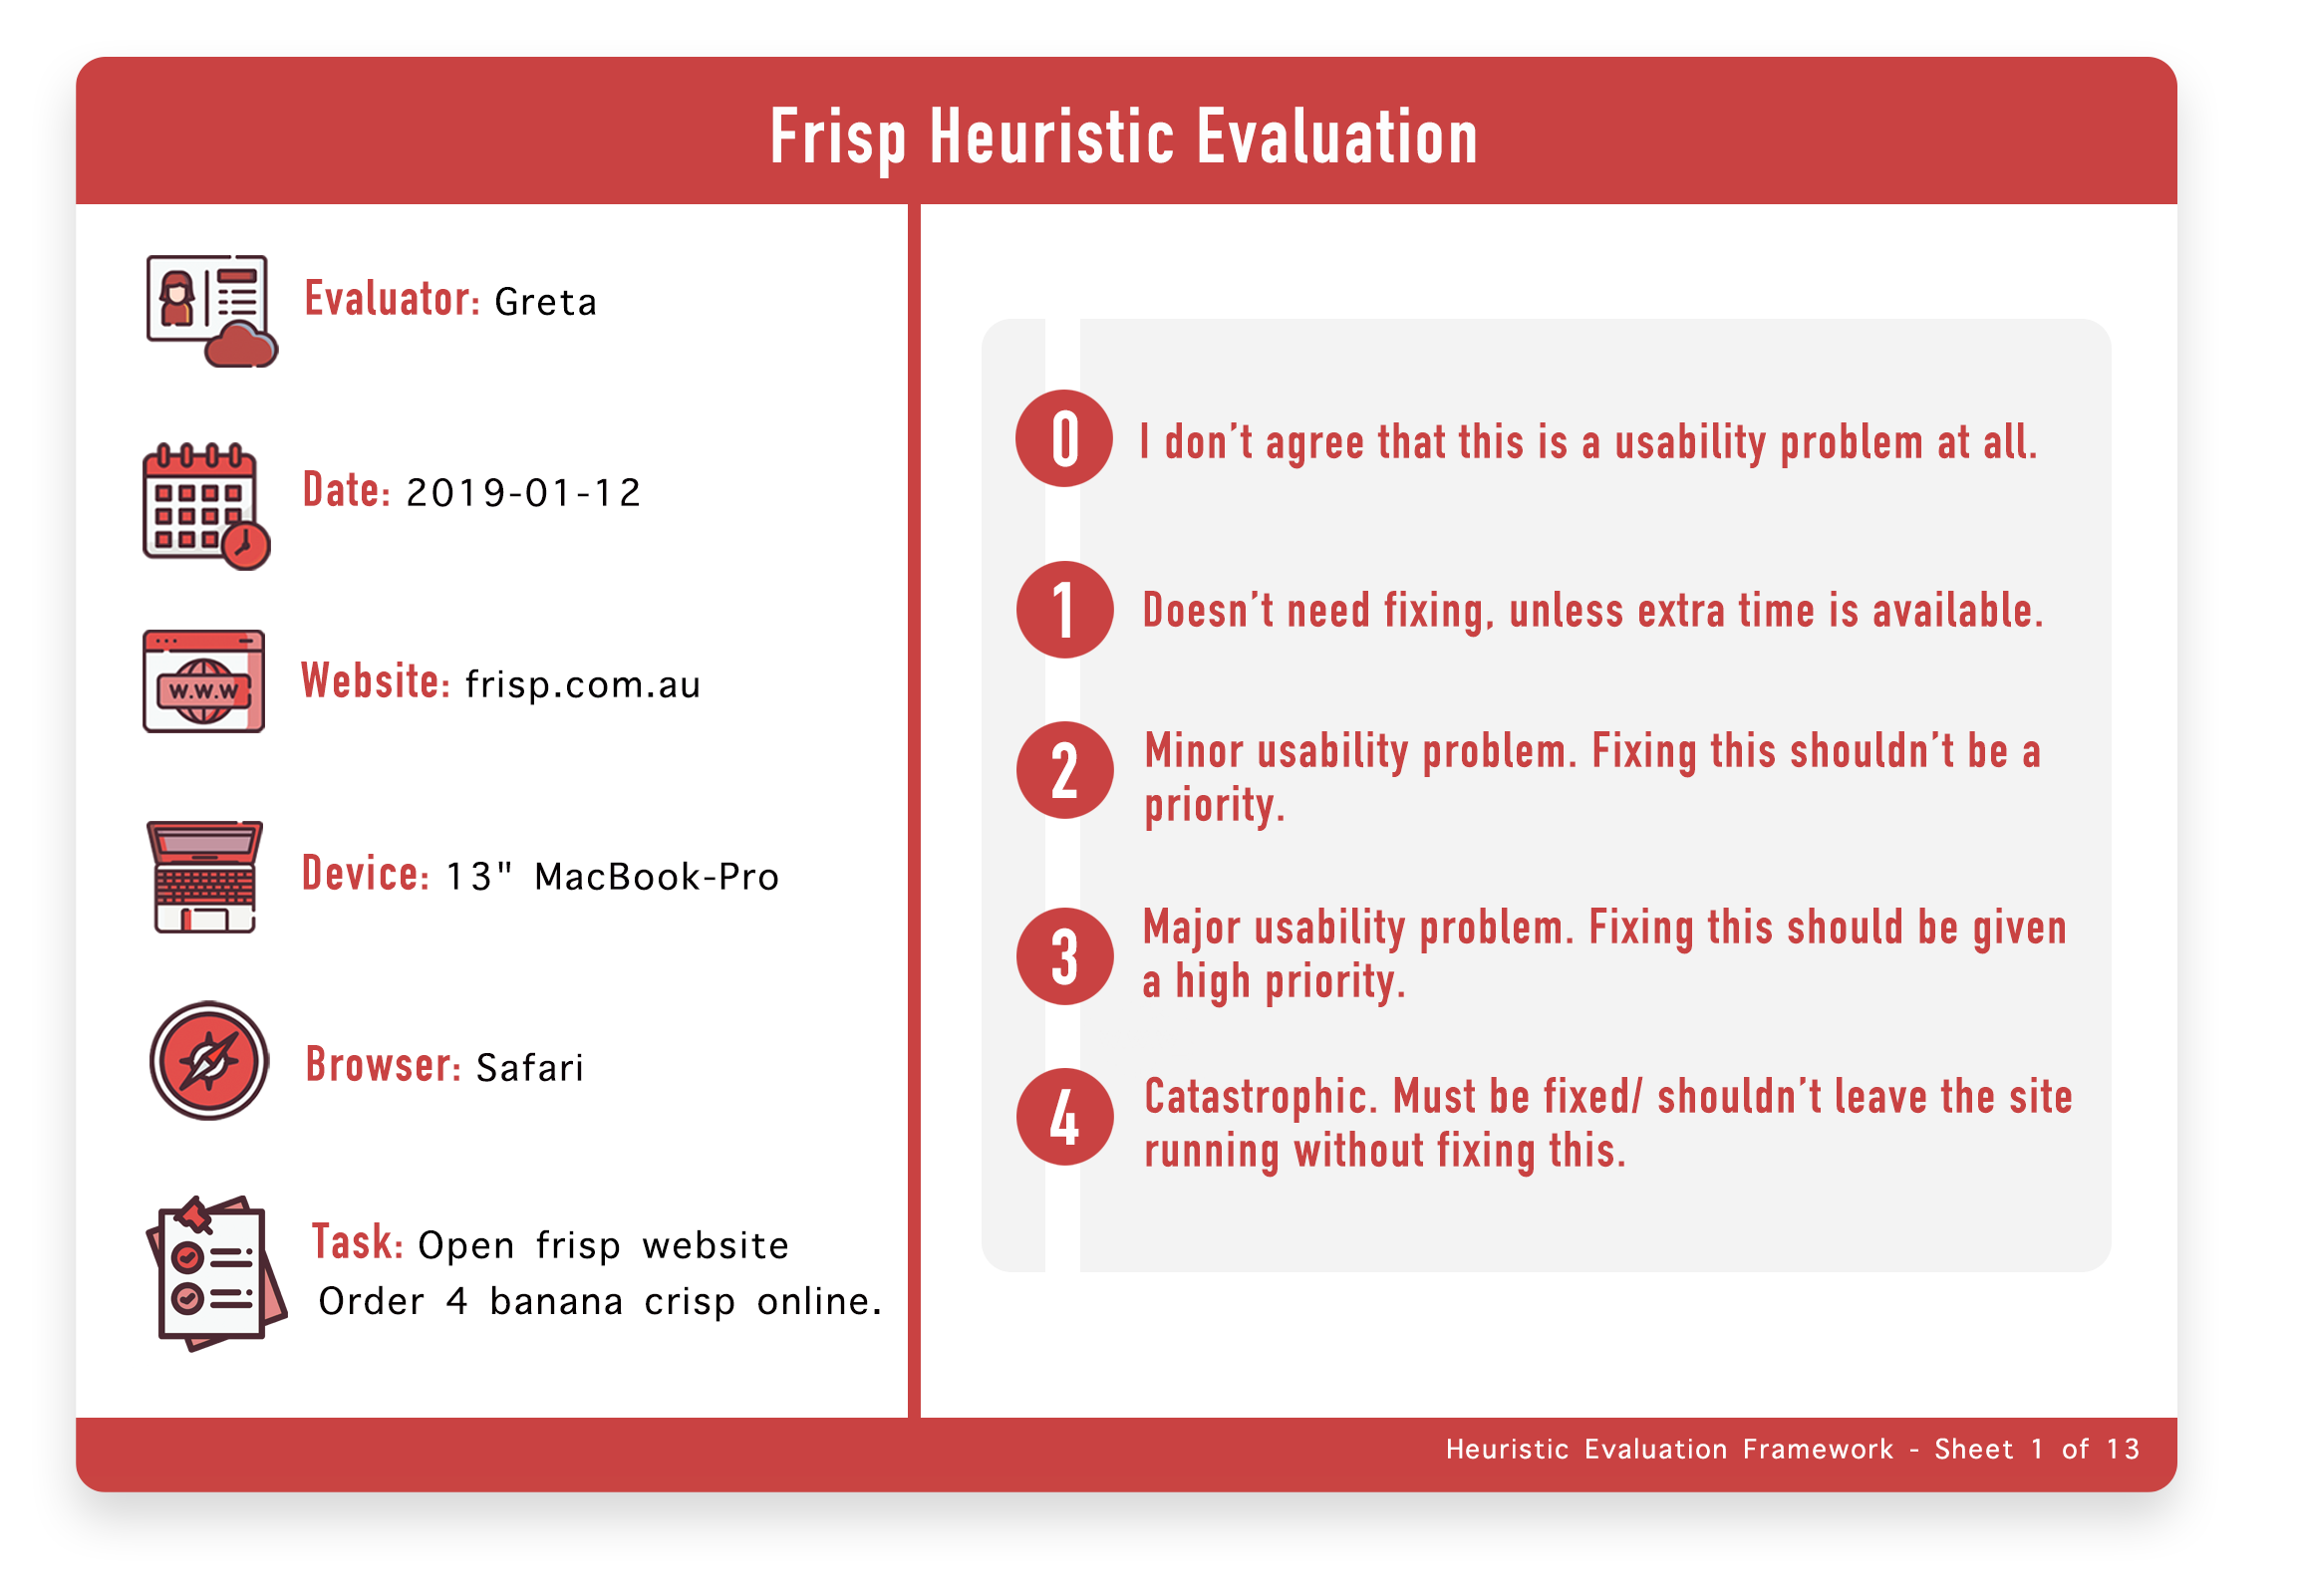 Heuristic evaluation page 1